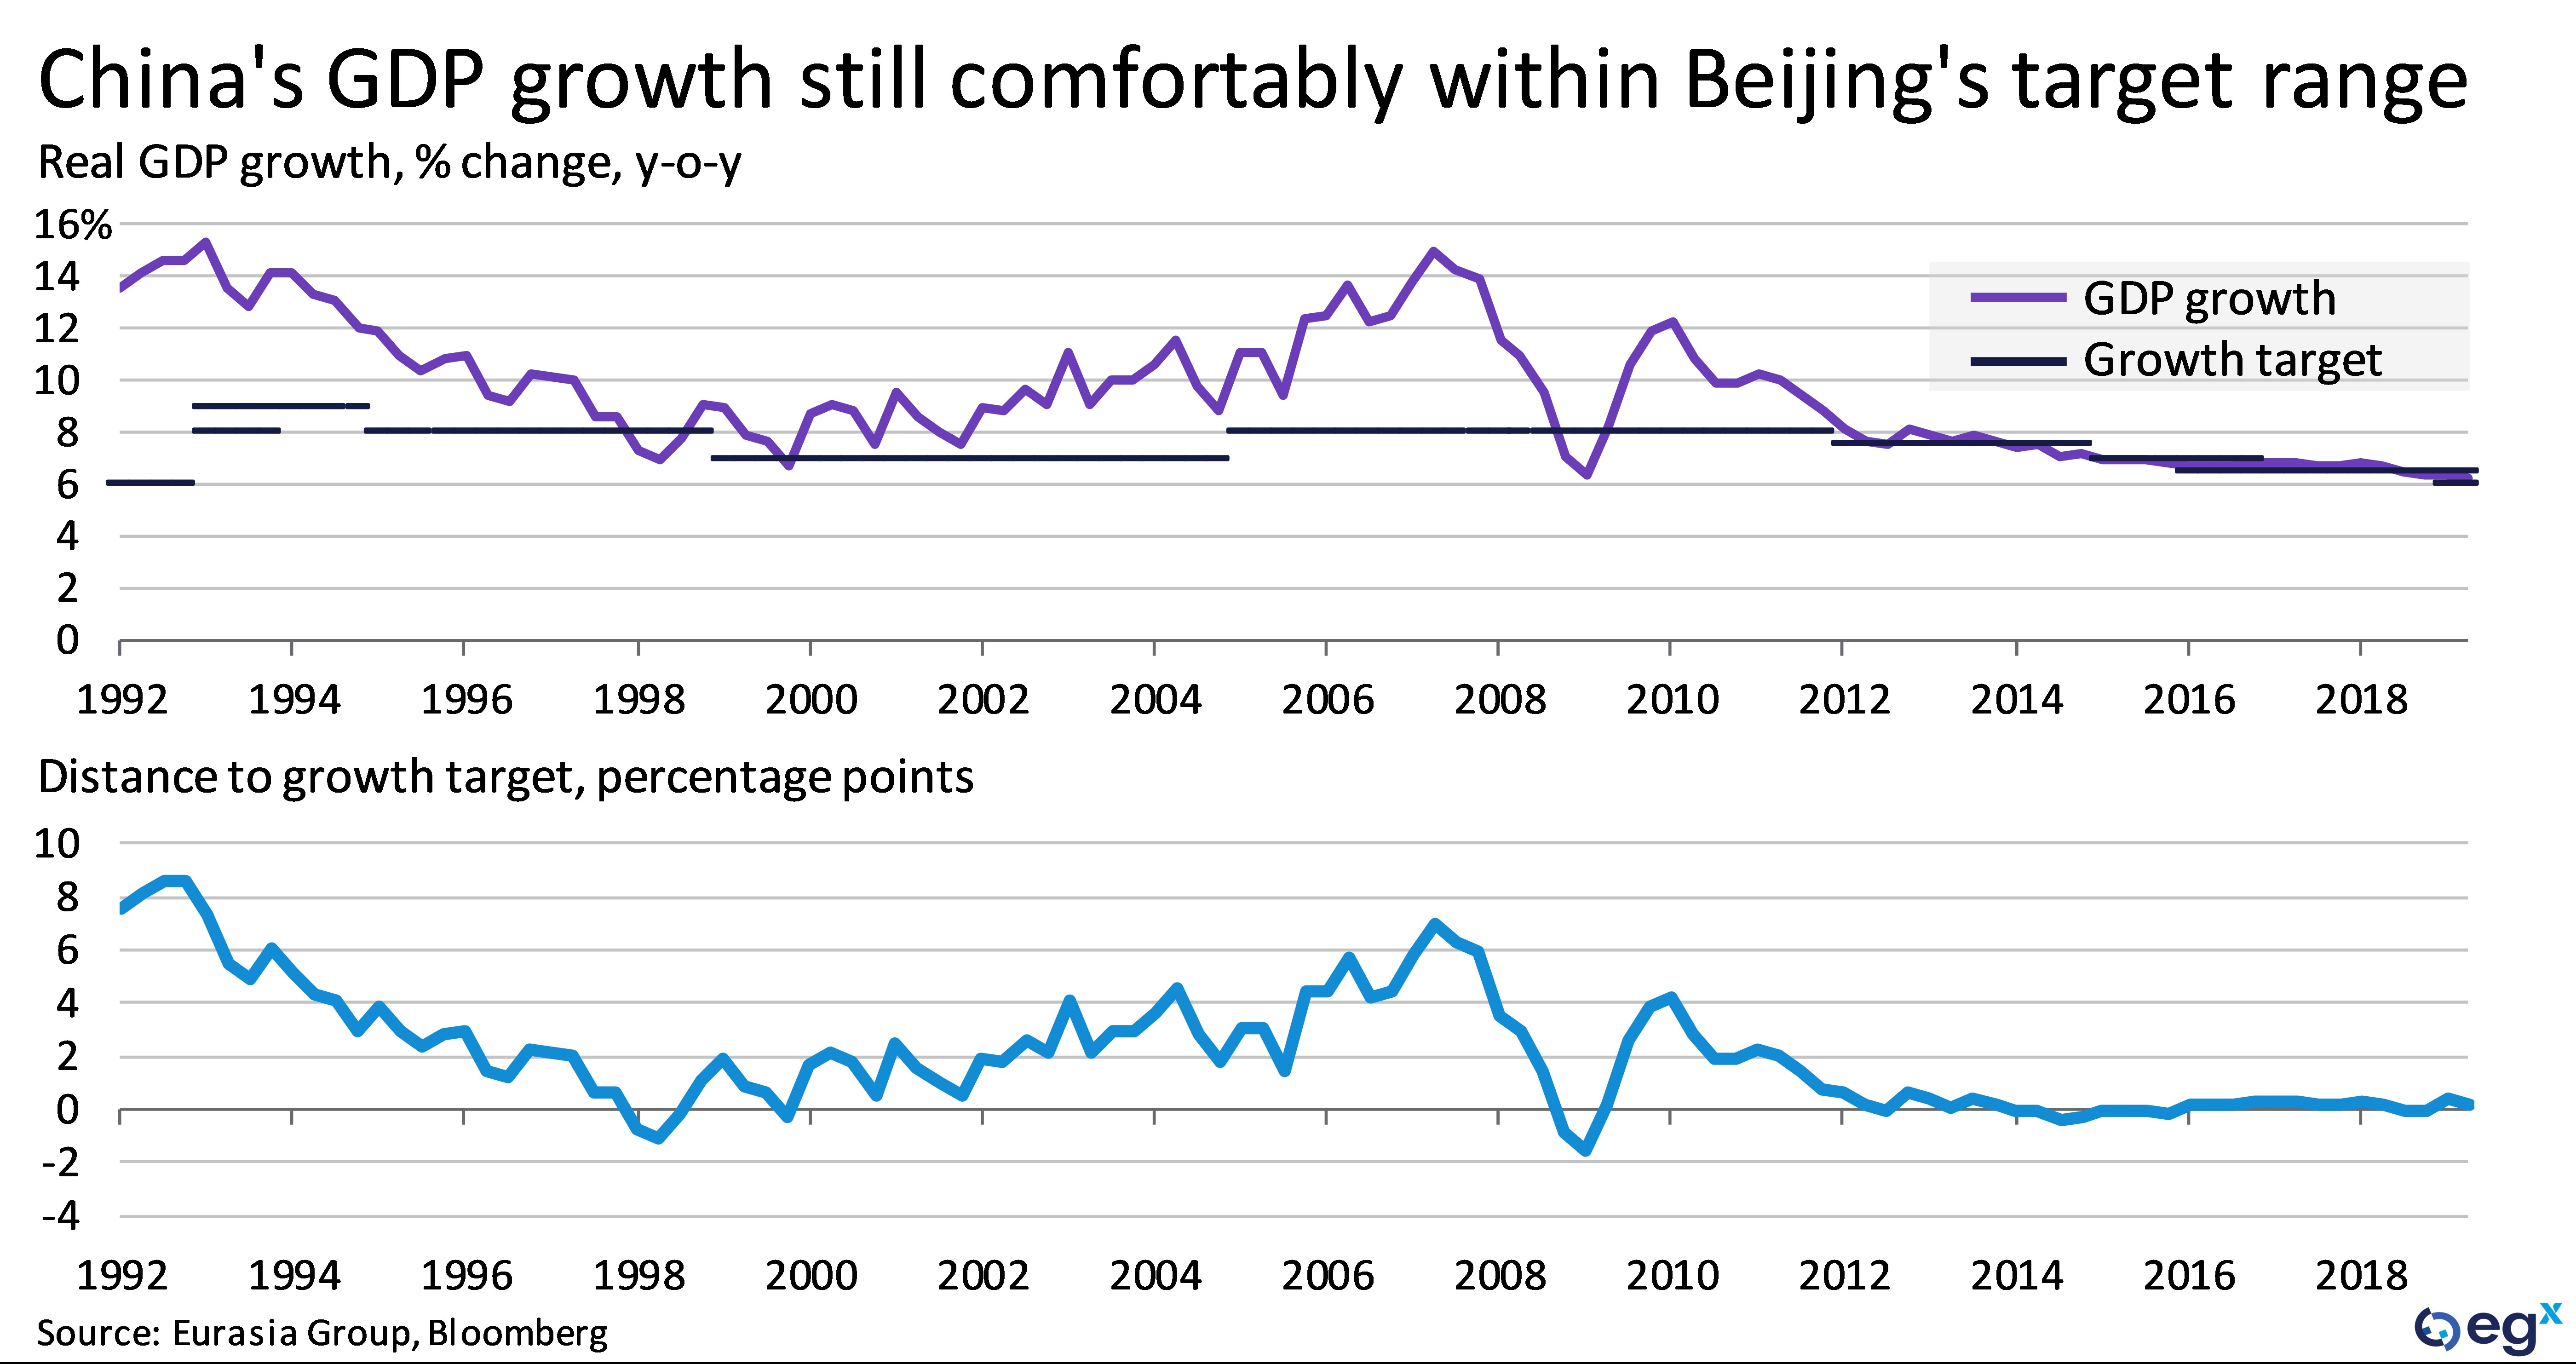 China's GDP growth is still comfortably within Beijing's target range